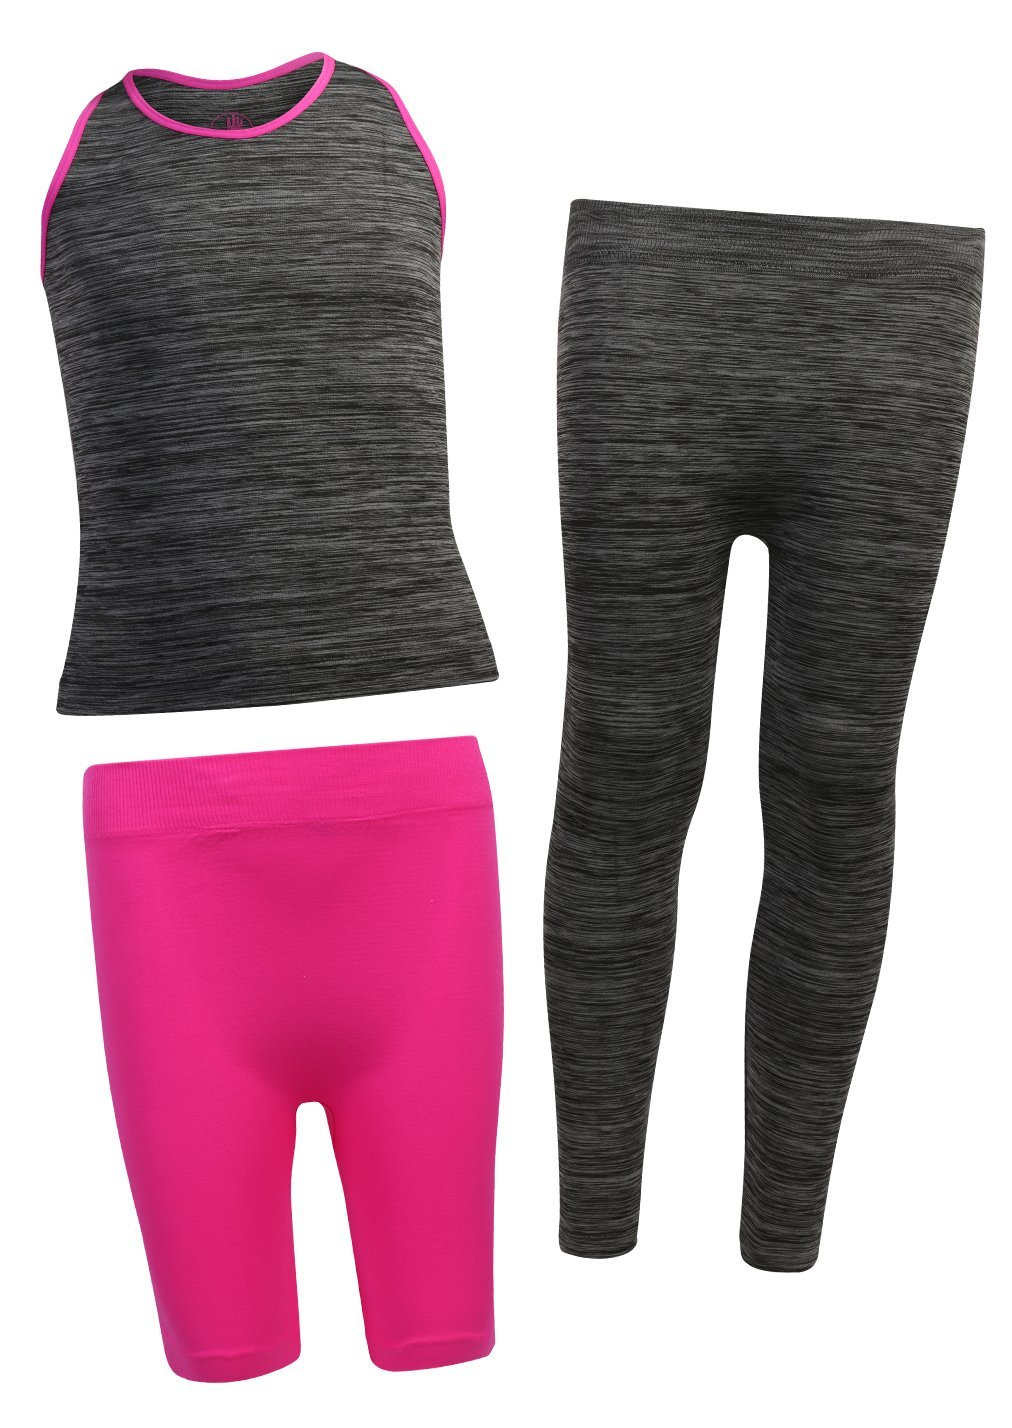 Body Glove Girl's 3 Piece Athletic Shorts, Legging and Tank Top Sets, Heather Charcoal, 6/6X'